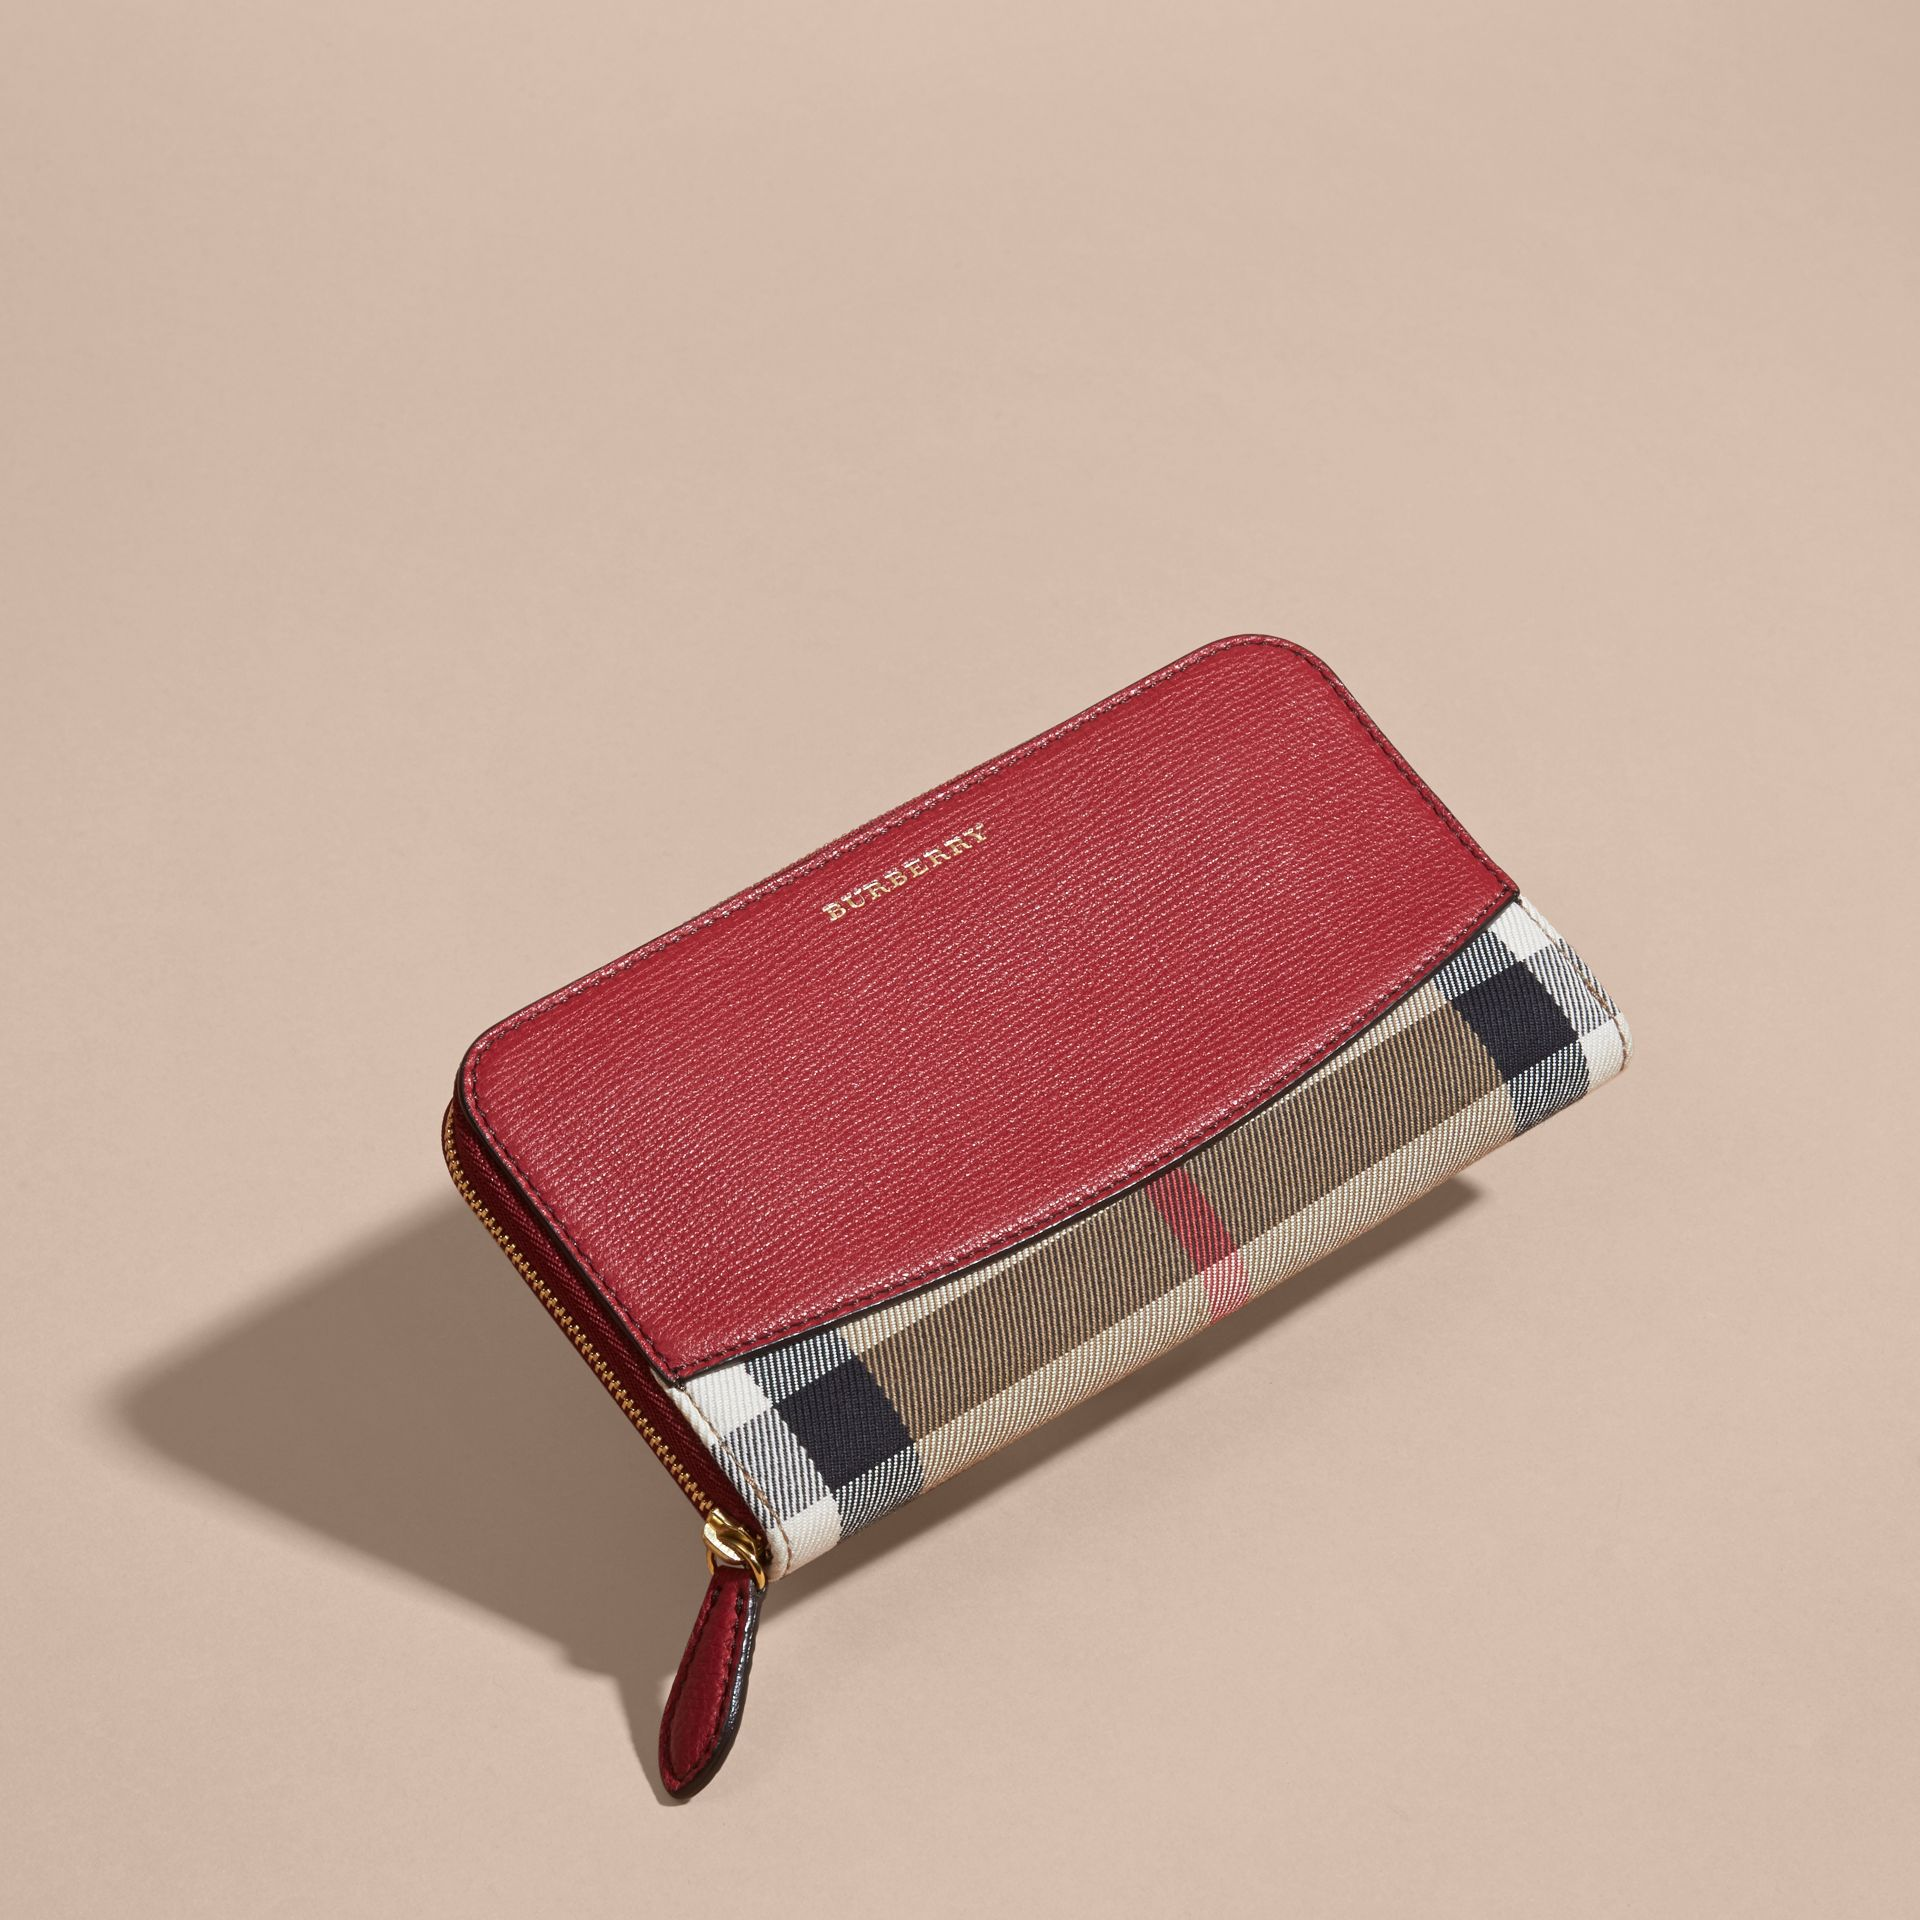 House Check and Leather Ziparound Wallet in Military Red - Women | Burberry Australia - gallery image 6